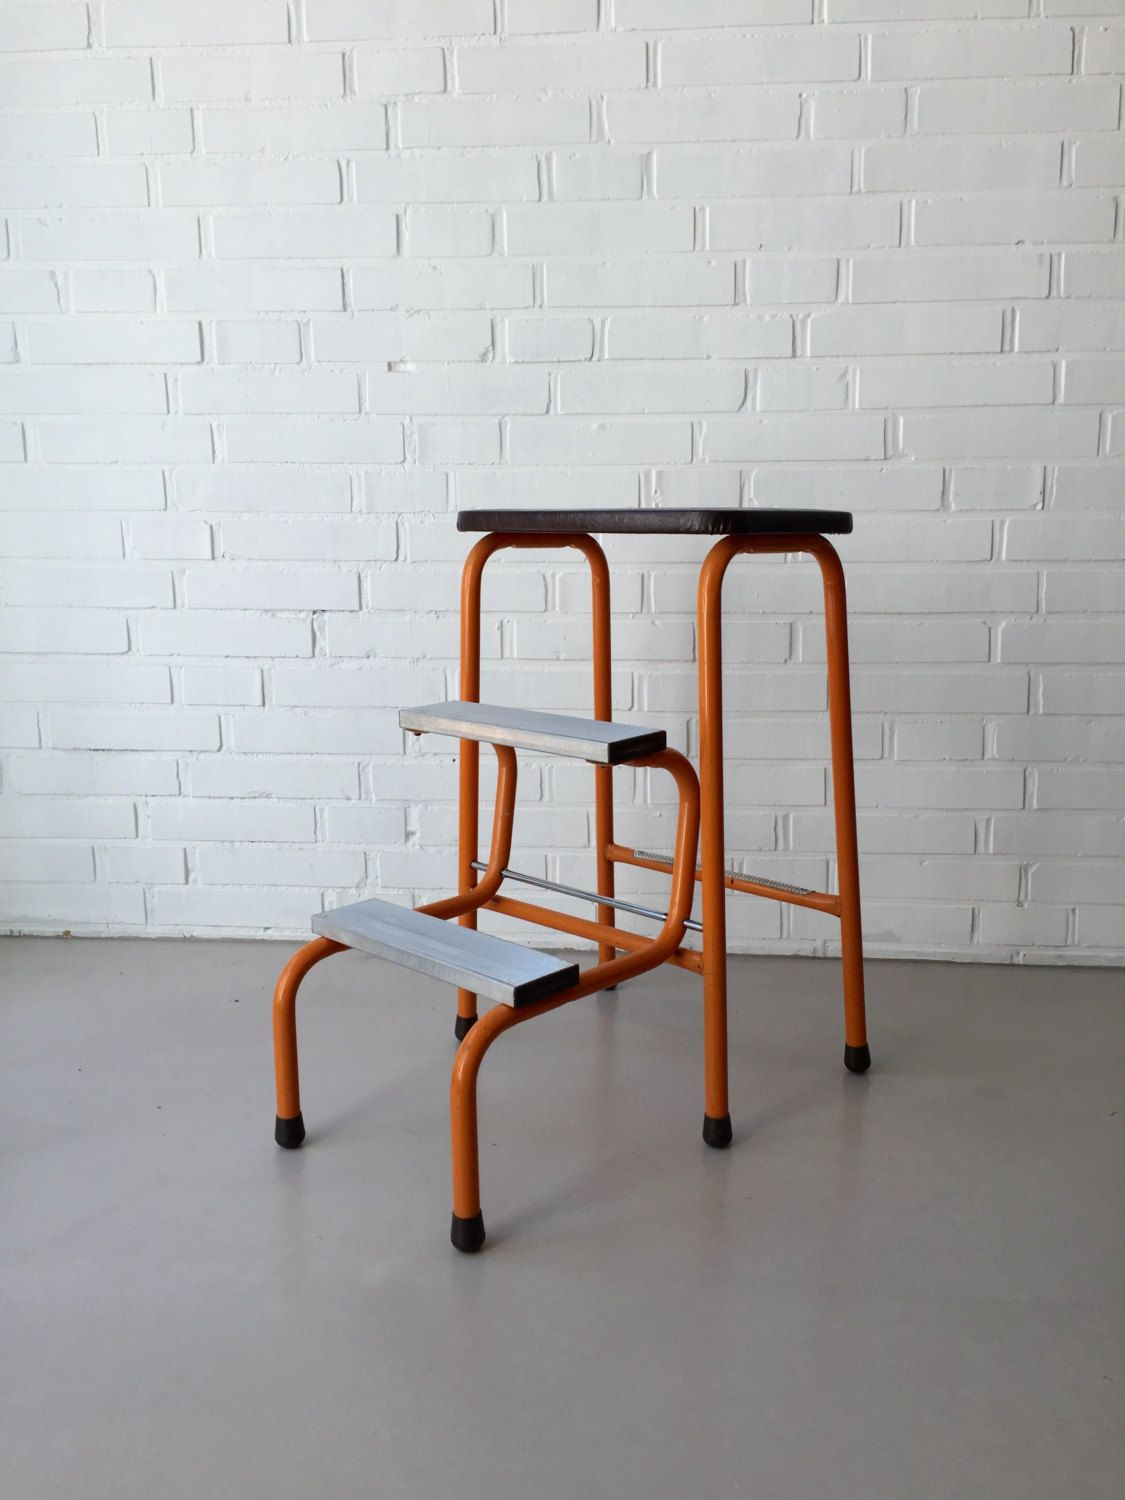 Vintage Trittleiter Tritt Hocker 50er 60er Klappbar Etsy Step Ladders Step Stool Home Decor